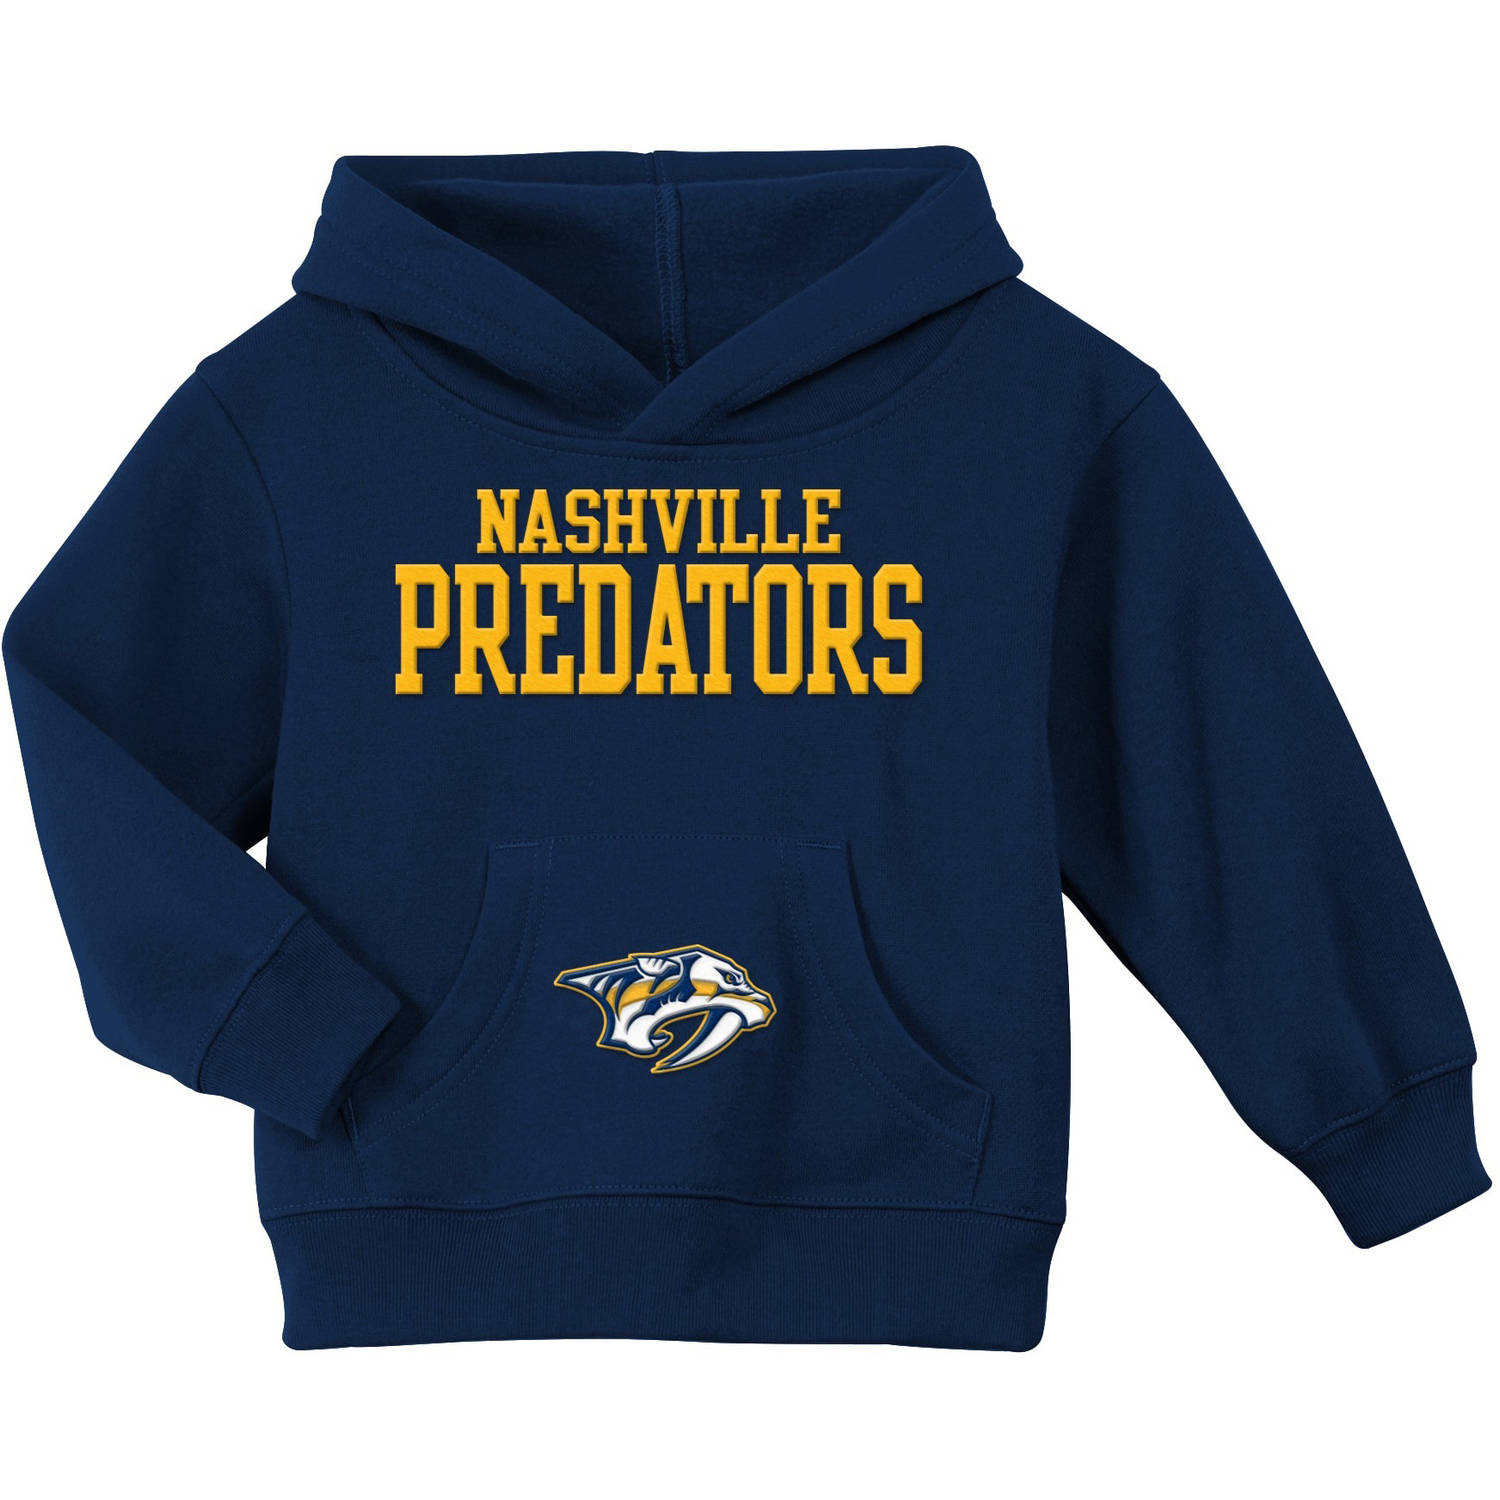 NHL Nashville Predators Toddler Team Fleece Hoodie